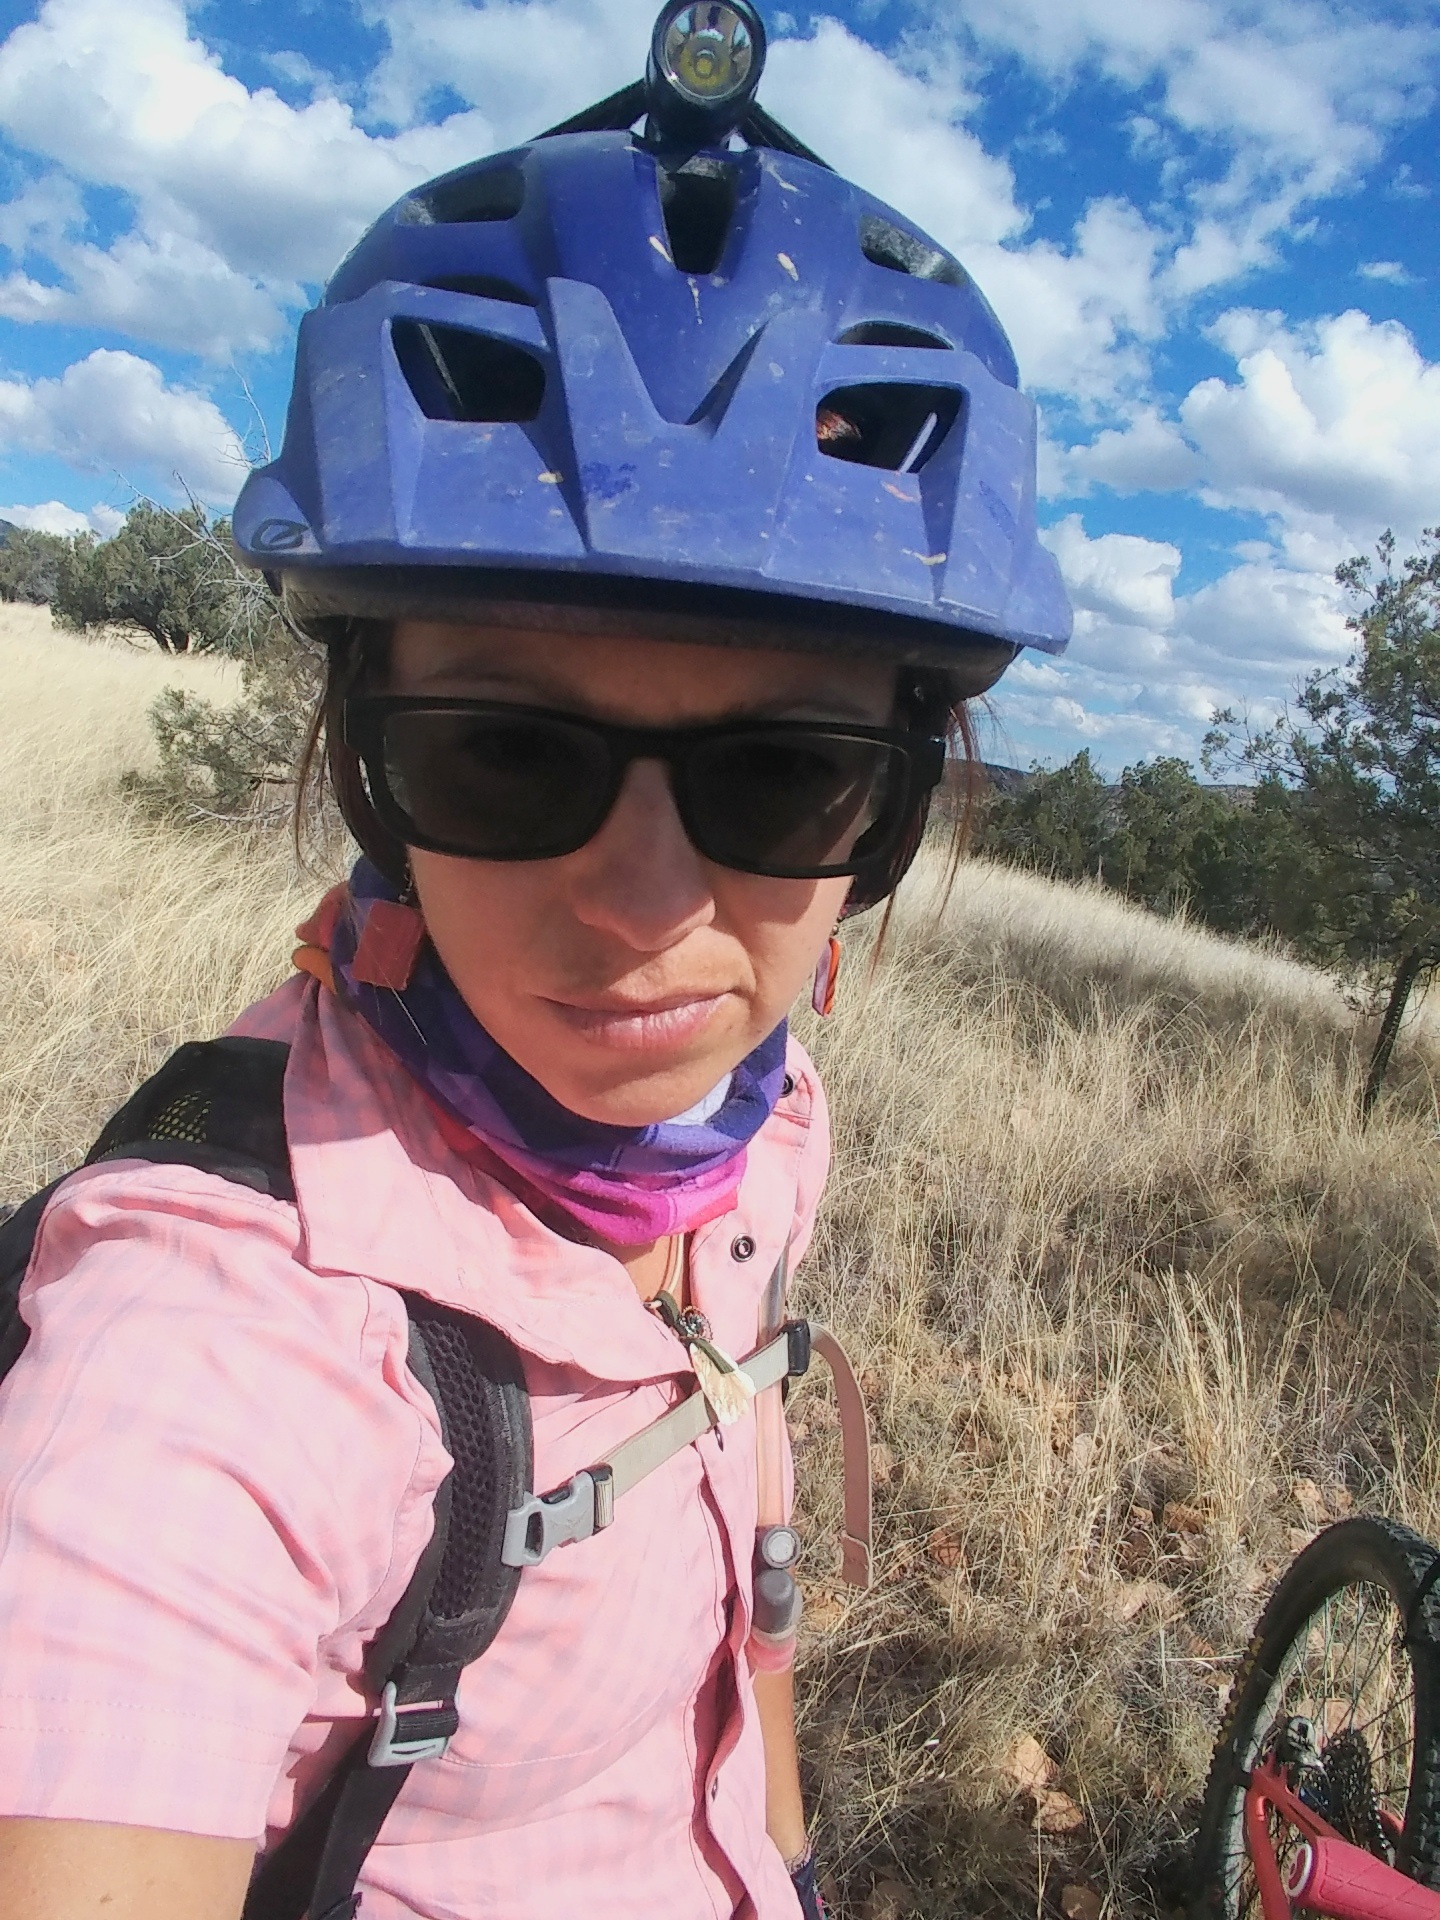 On the Heartbreak Tour of 2019: Canelo Hills Shakedown. Crying my way through the first hundred miles of the Arizona trail on a preride, the day after getting my heart smashed. NOT a fun ride.